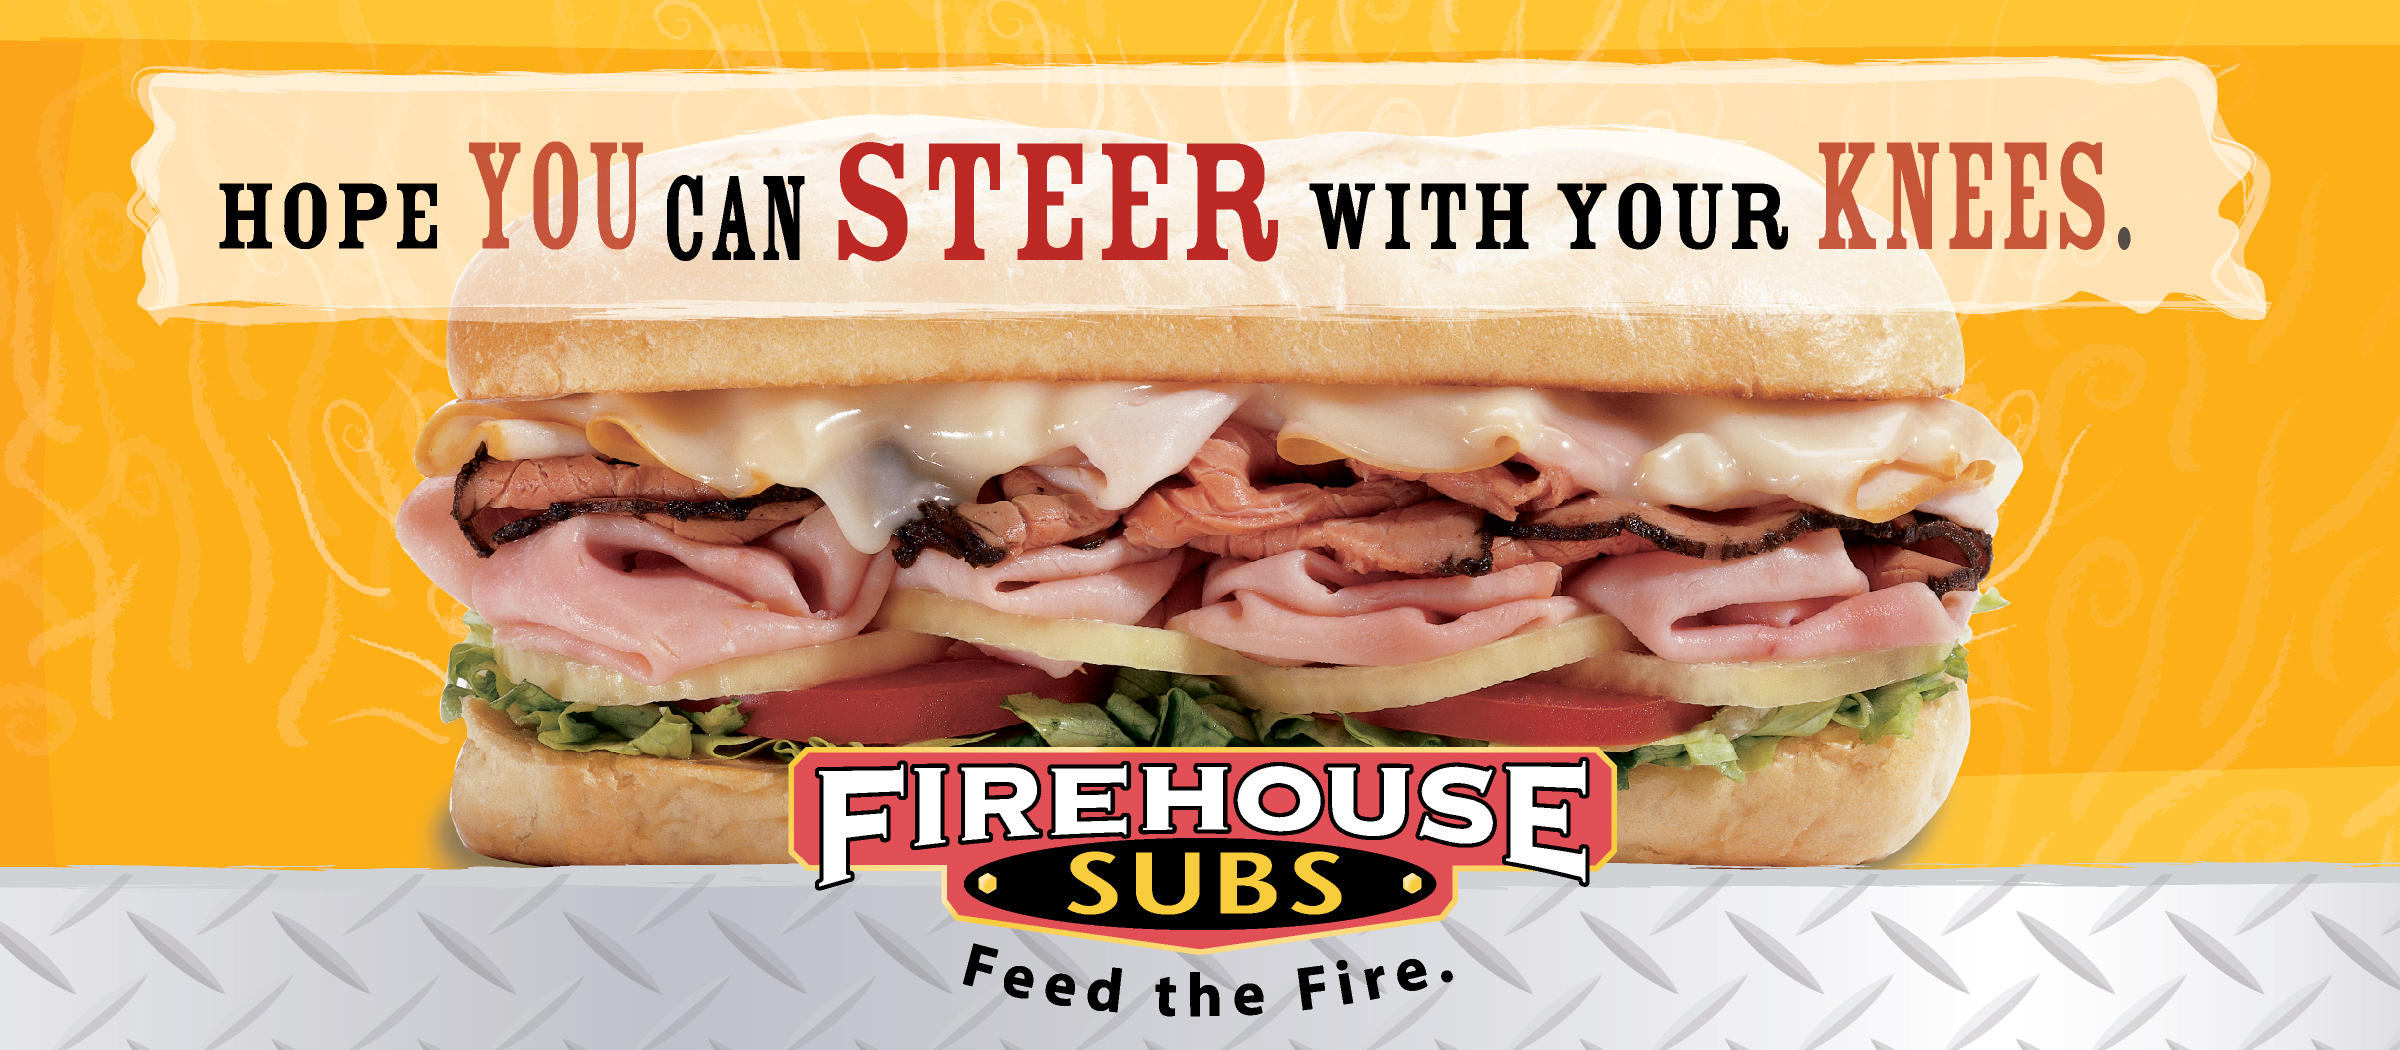 Firehouse Subs | OOH, POS, video, radio, print // concept, creative direction, copywriting, art direction, production